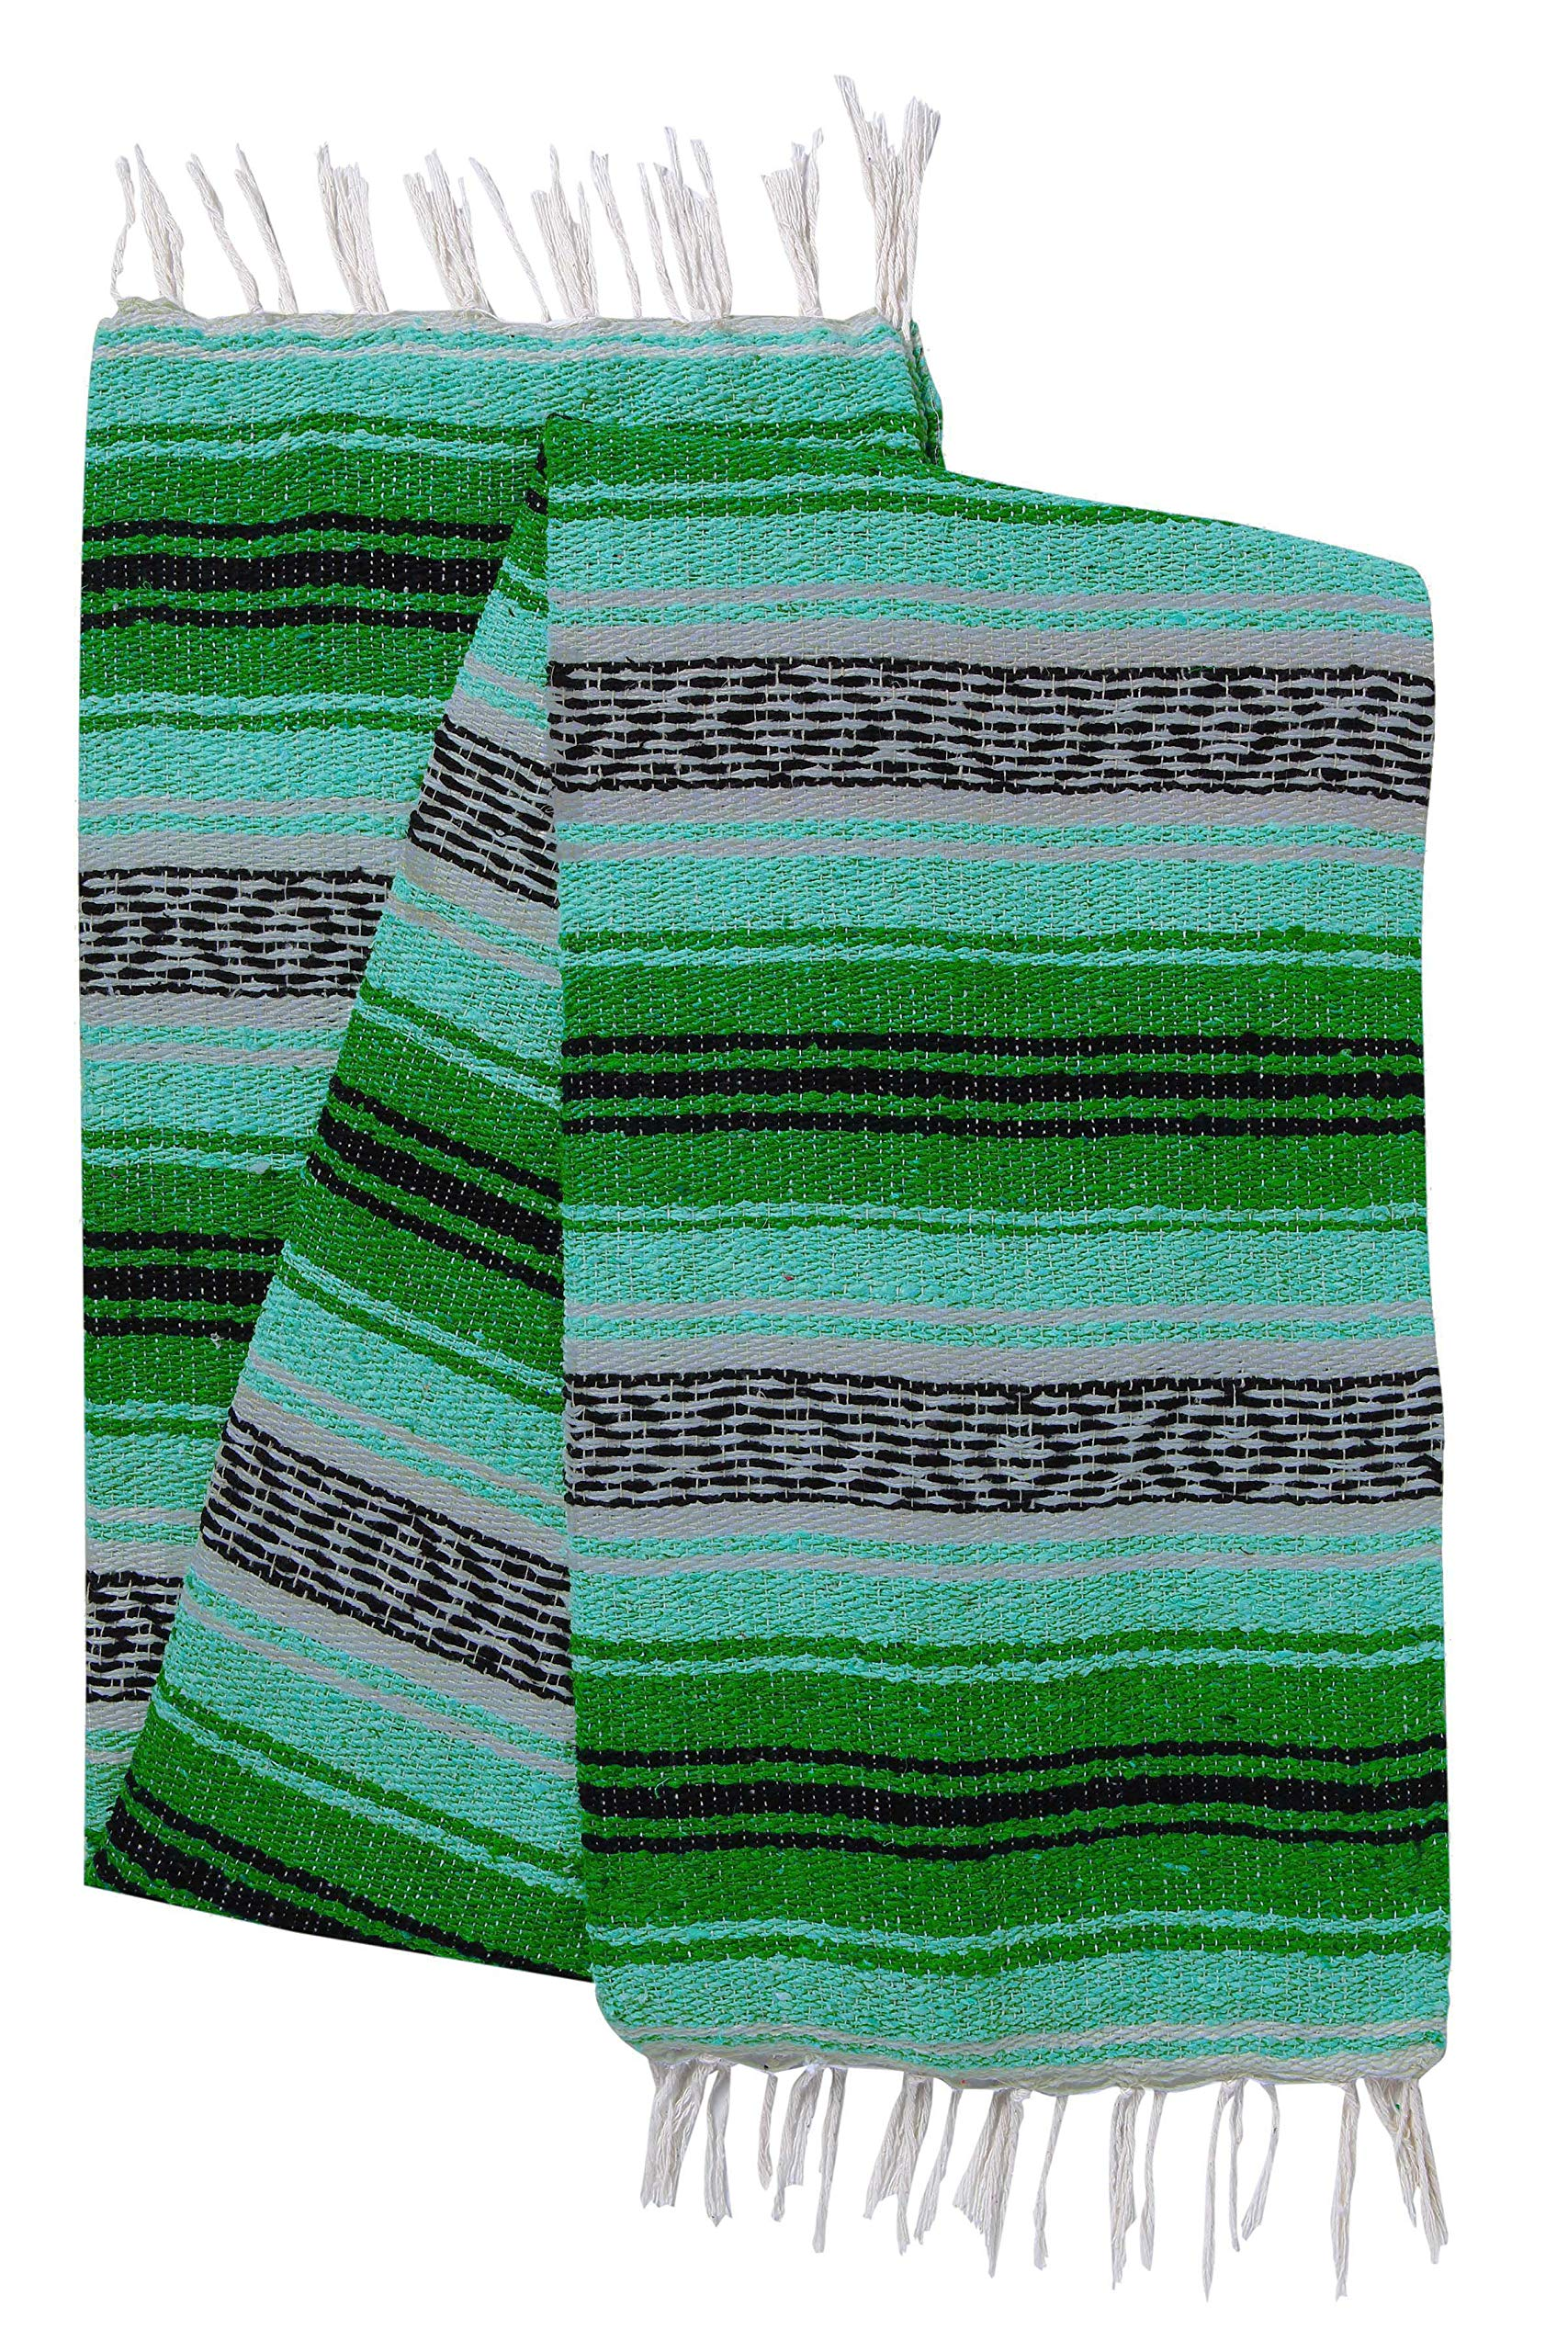 El Paso Designs Genuine Mexican Falsa Blanket - Yoga Studio Blanket, Colorful, Soft Woven Serape Imported from Mexico (Cool Mint and Green)